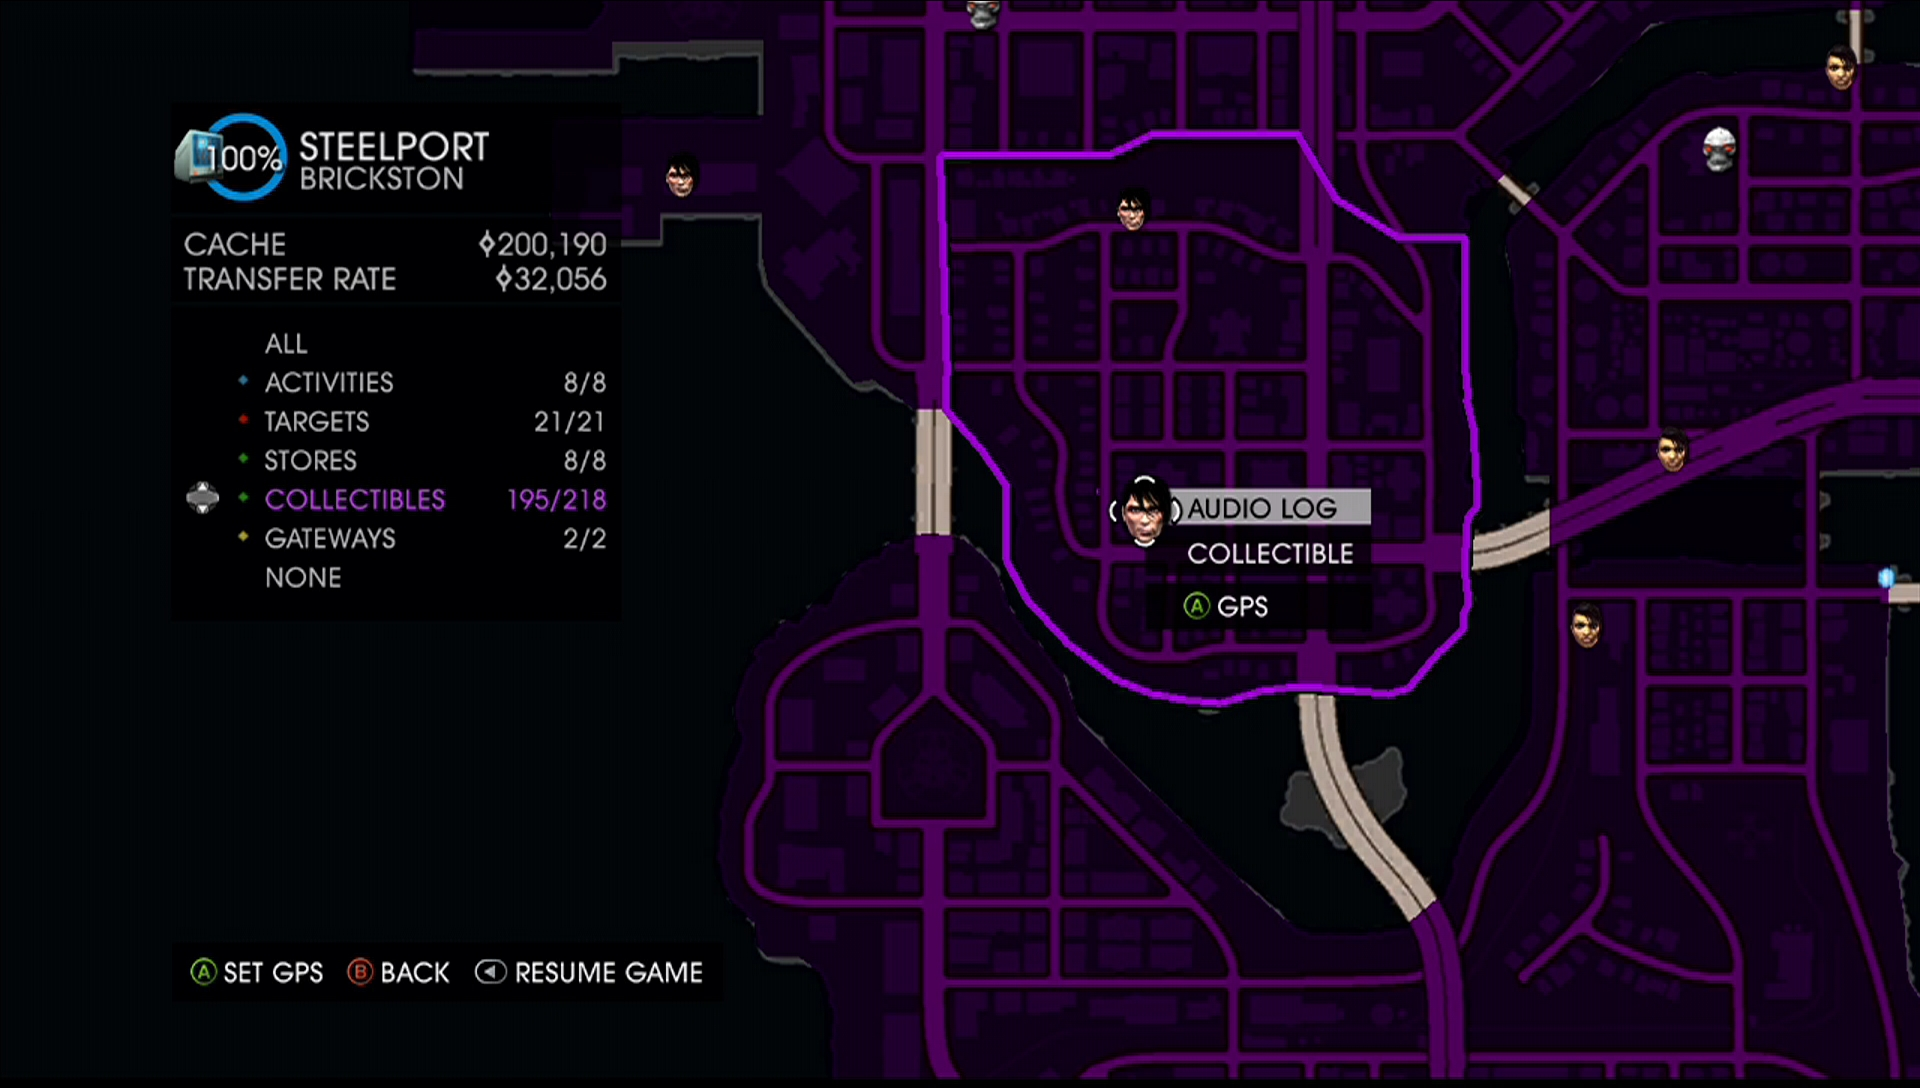 CCC: Saints Row IV Guide/Walkthrough - Audio Logs on saints row 5 map, the sims 1 map, assassin's creed 1 map, saints row map only, dark souls 1 map, guild wars 1 map, driver 1 map, gta 4 map, gta 1 map, dragon quest 1 map, portal 1 map, uncharted 1 map, gta san andreas map, risen 1 map, saints row hell map, saints row iv map, just cause 1 map, skyrim map, saints row cd map, resident evil 1 map,